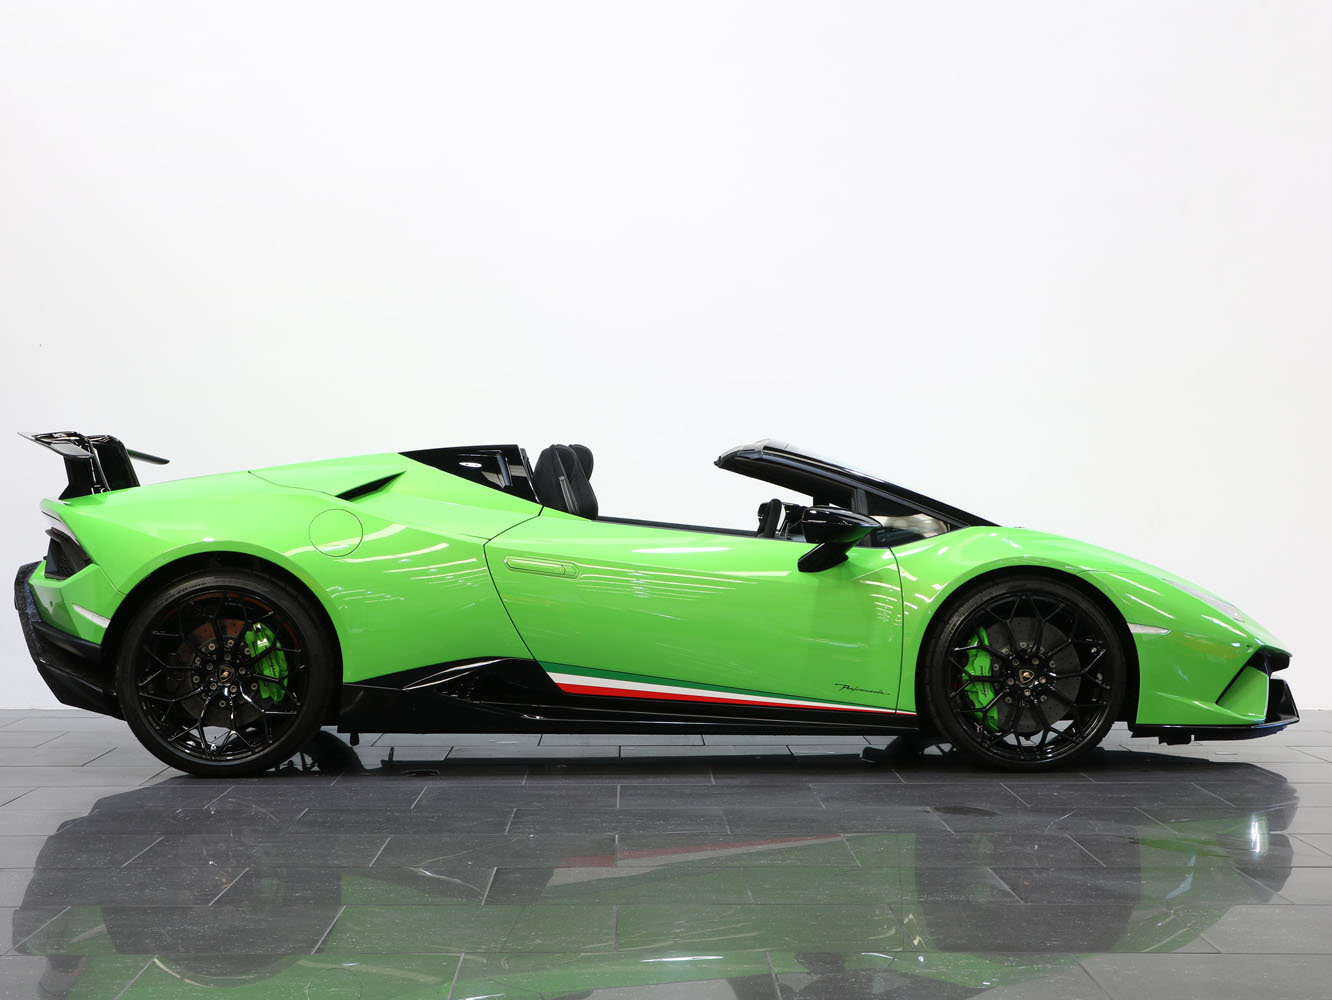 2019 19 19 LAMBORGHINI HURACAN SPYDER PERFORMANTE AUTO For Sale (picture 2 of 6)